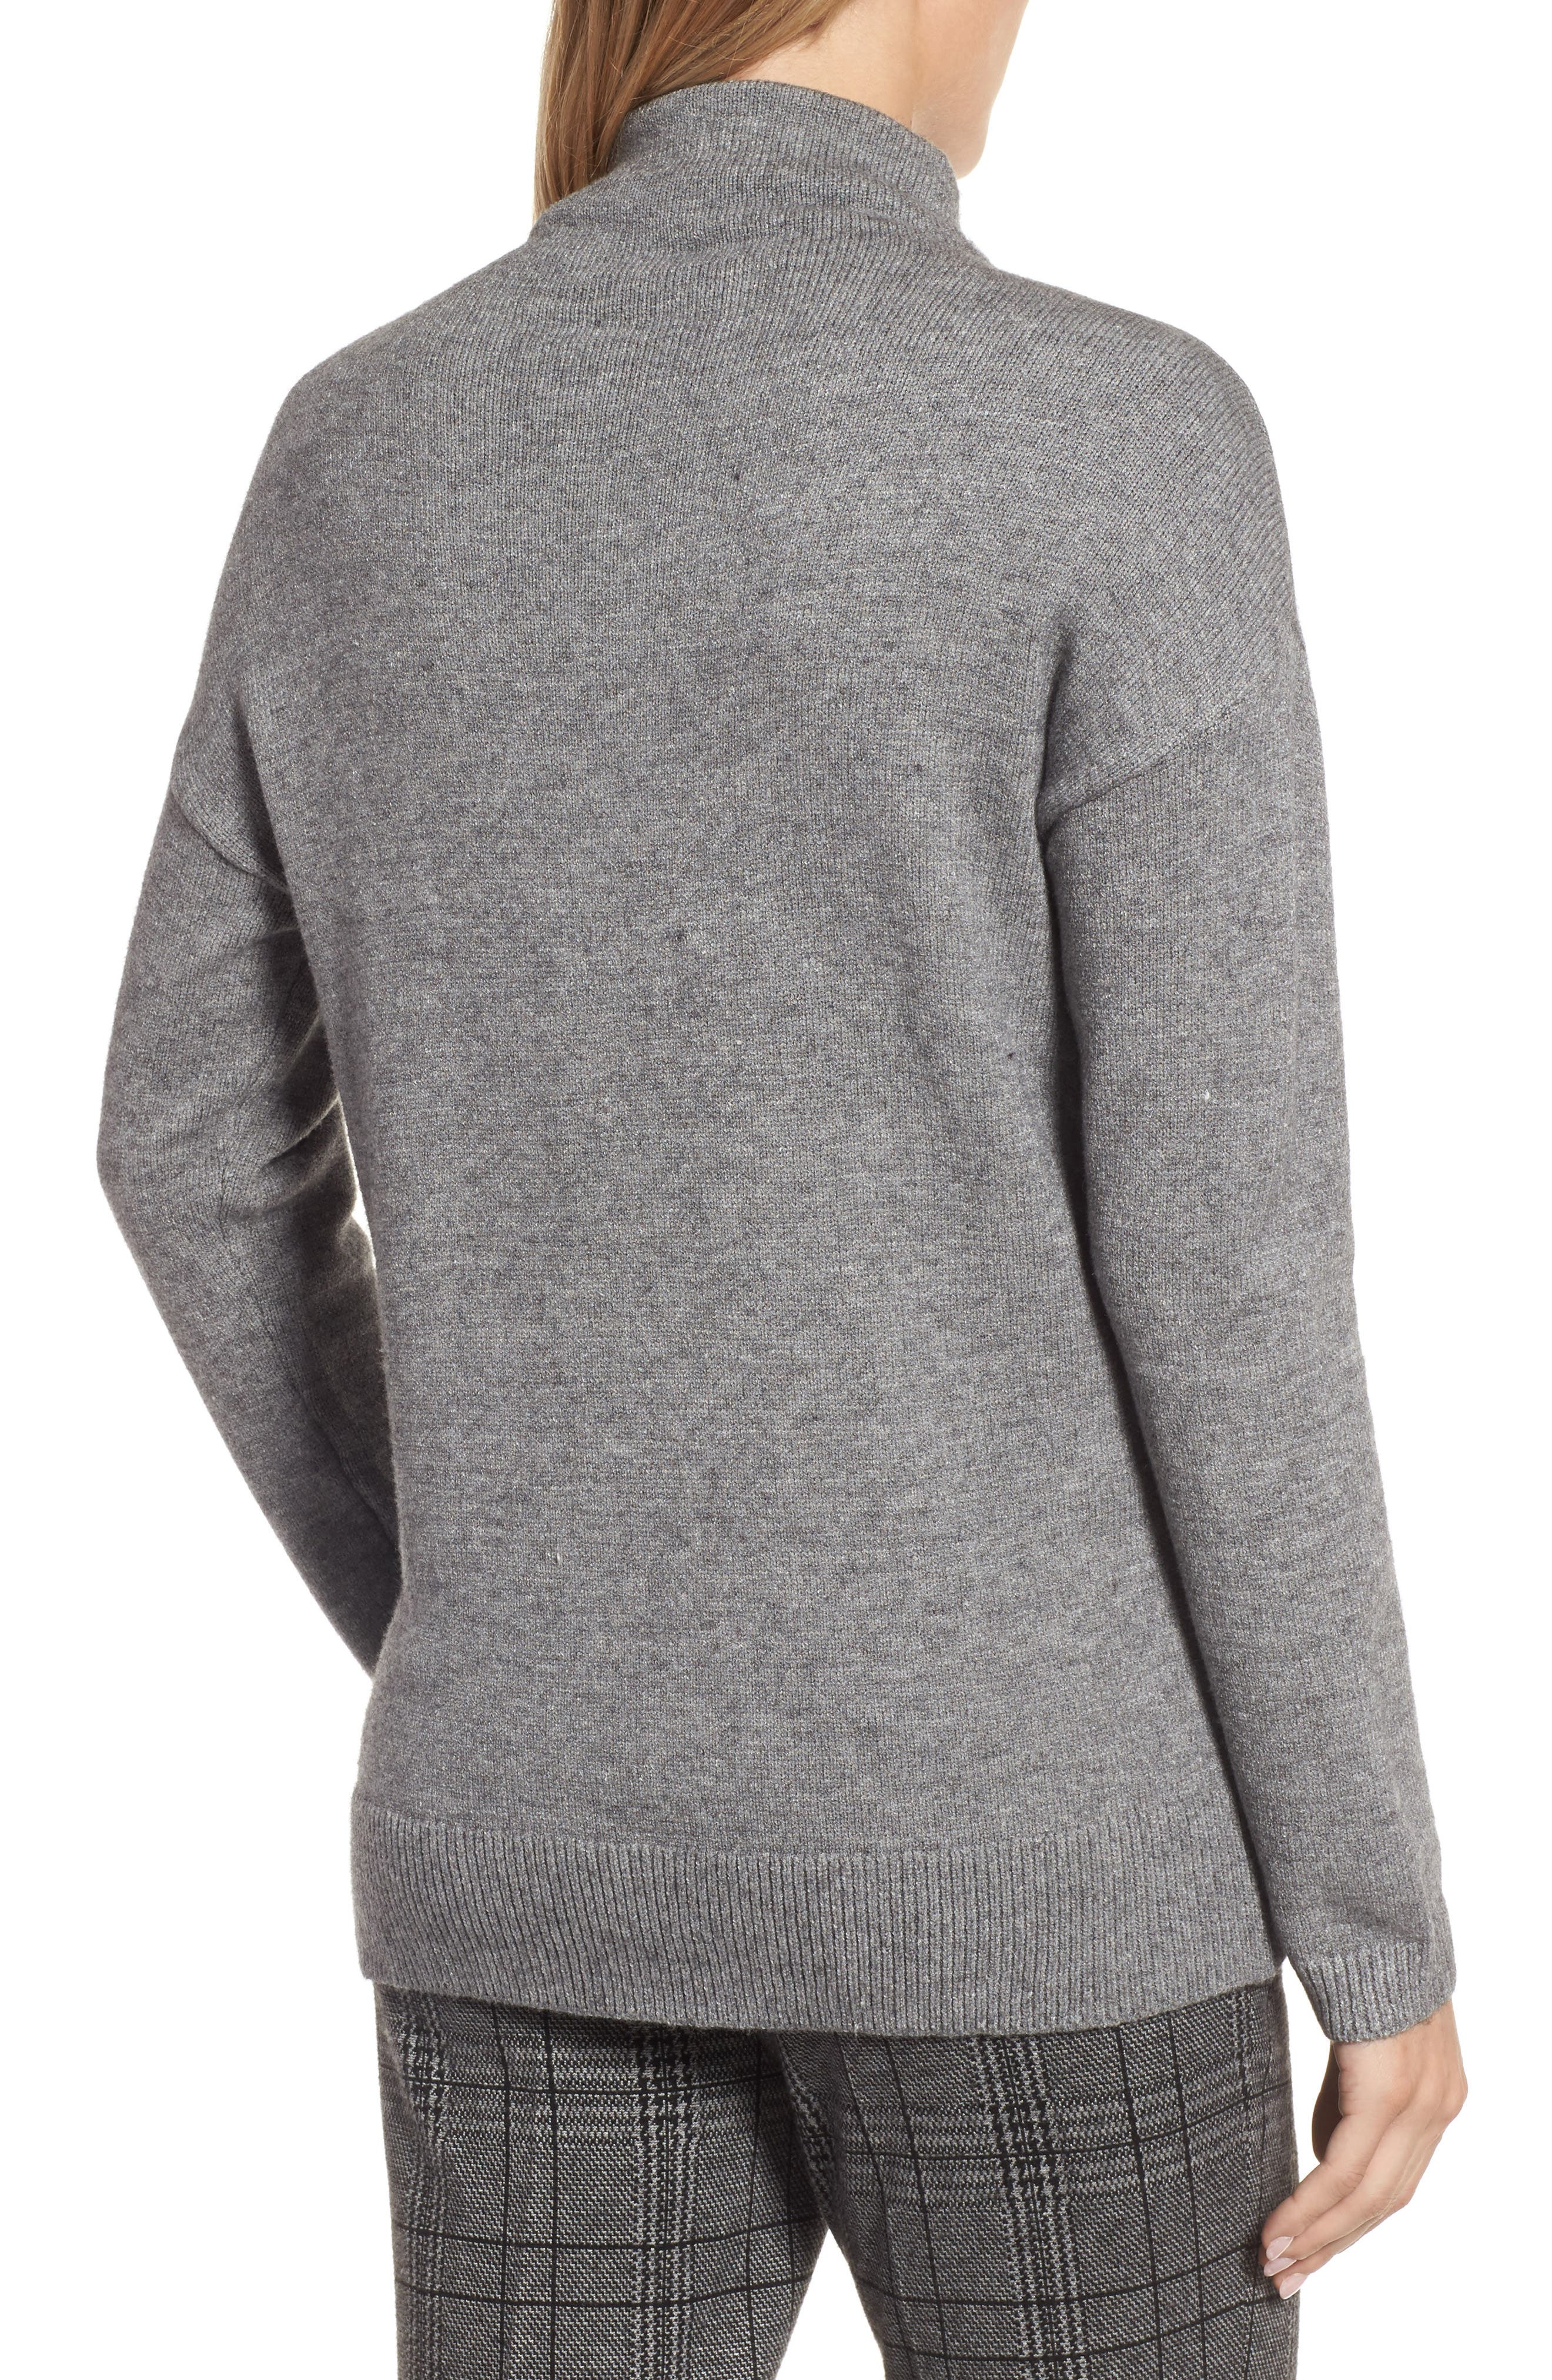 RD Style Funnel Neck Sweater,                             Alternate thumbnail 2, color,                             Grey